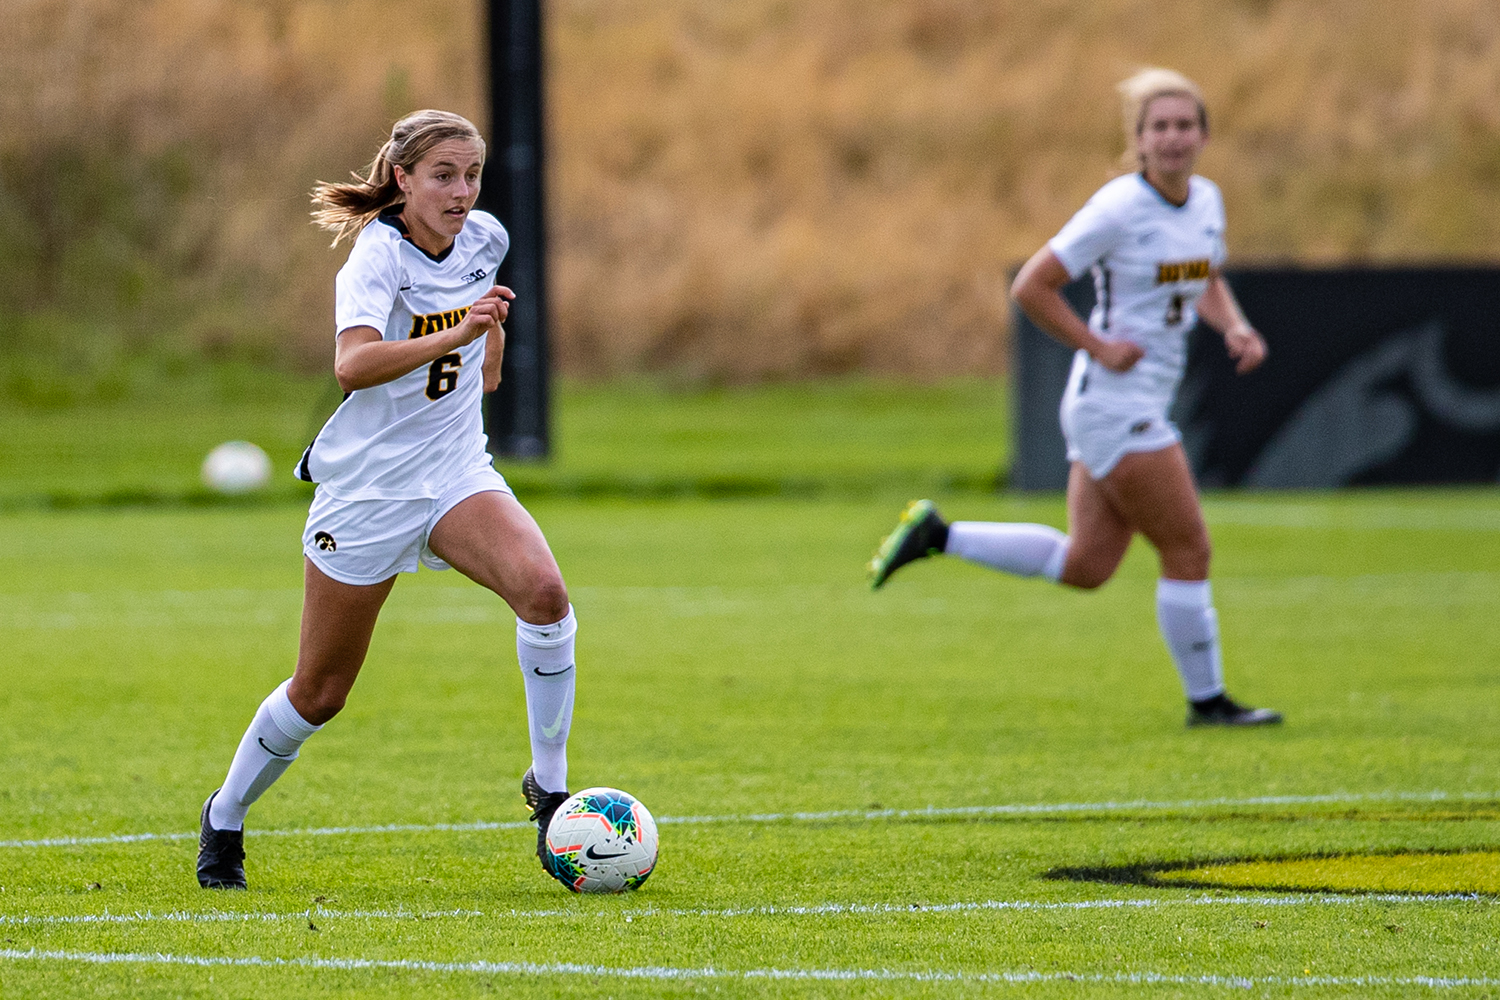 Iowa midfielder Isabella Blackman runs down the field during a women's soccer match between Iowa and Maryland at the Iowa Soccer Complex on Sunday, October 13, 2019. The Hawkeyes shut out the Terrapins, 4-0.